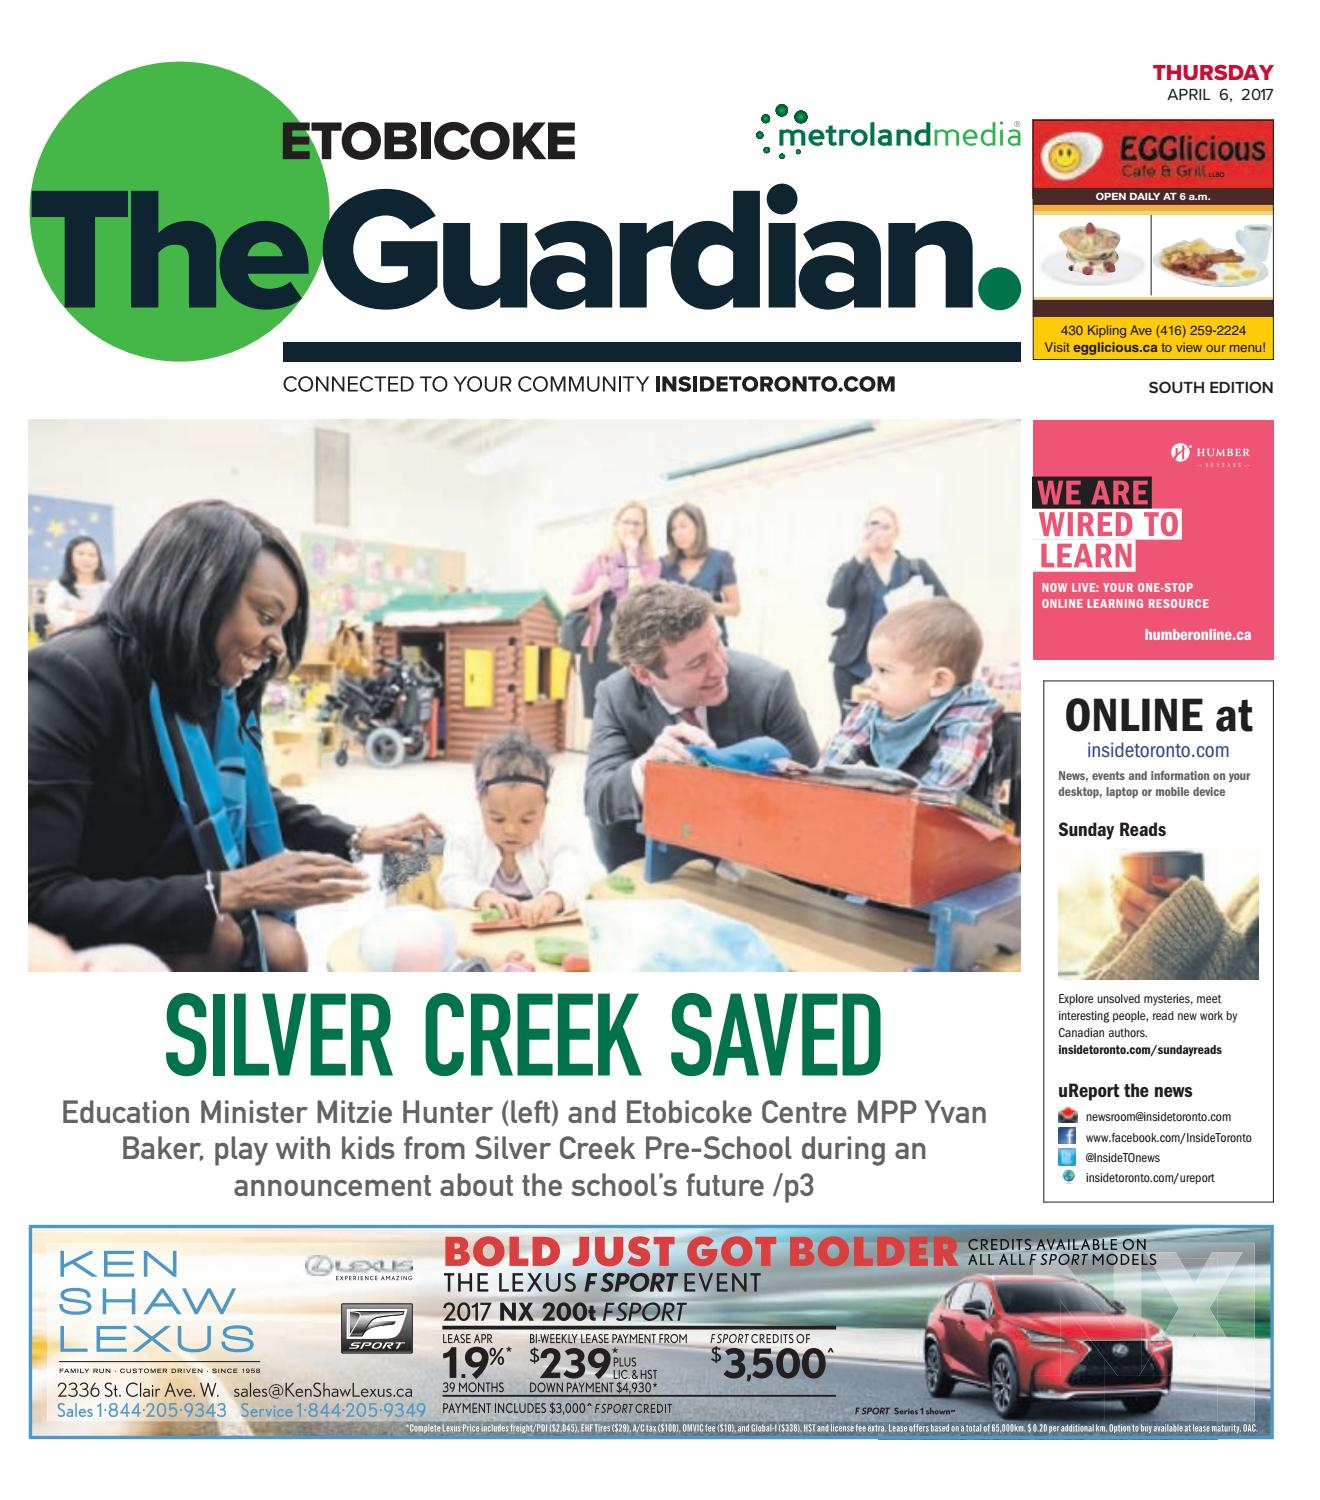 The etobicoke guardian south april 6 2017 by the etobicoke the etobicoke guardian south april 6 2017 by the etobicoke guardian issuu solutioingenieria Choice Image